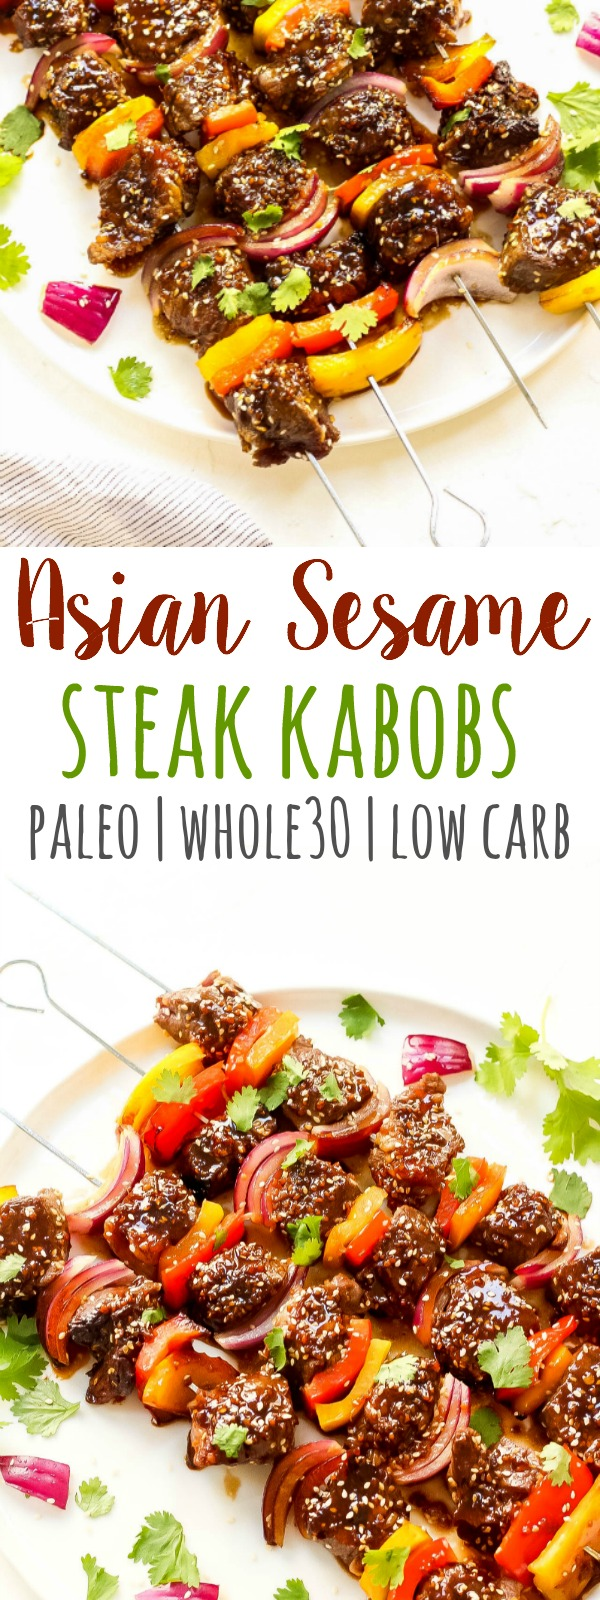 These Asian sesame Whole30 steak kabobs are marinaded in a quick and easy Whole30 and Paleo marinade that make the grilled steak kabobs really come to life! It's a simple Whole30 steak kabob recipe that anyone can whip up, and it's even easier to grill. #whole30steak #paleosteak #whole30grilling #ketosteak